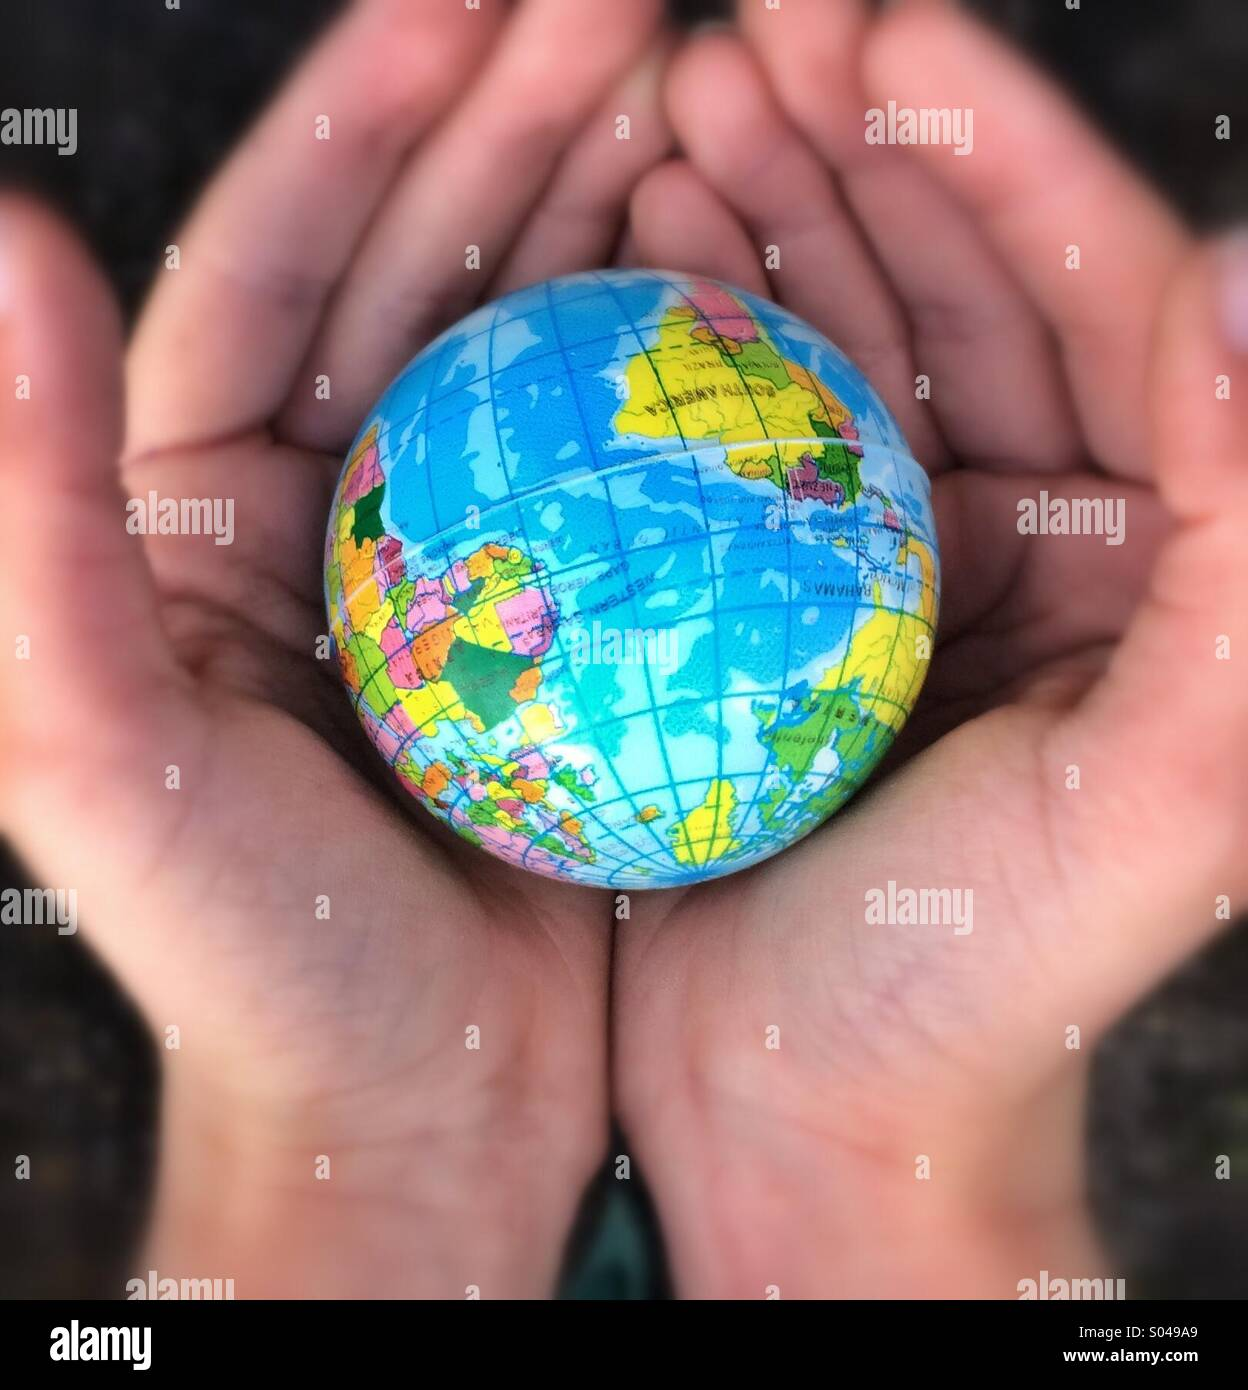 The whole world in our hands - Stock Image